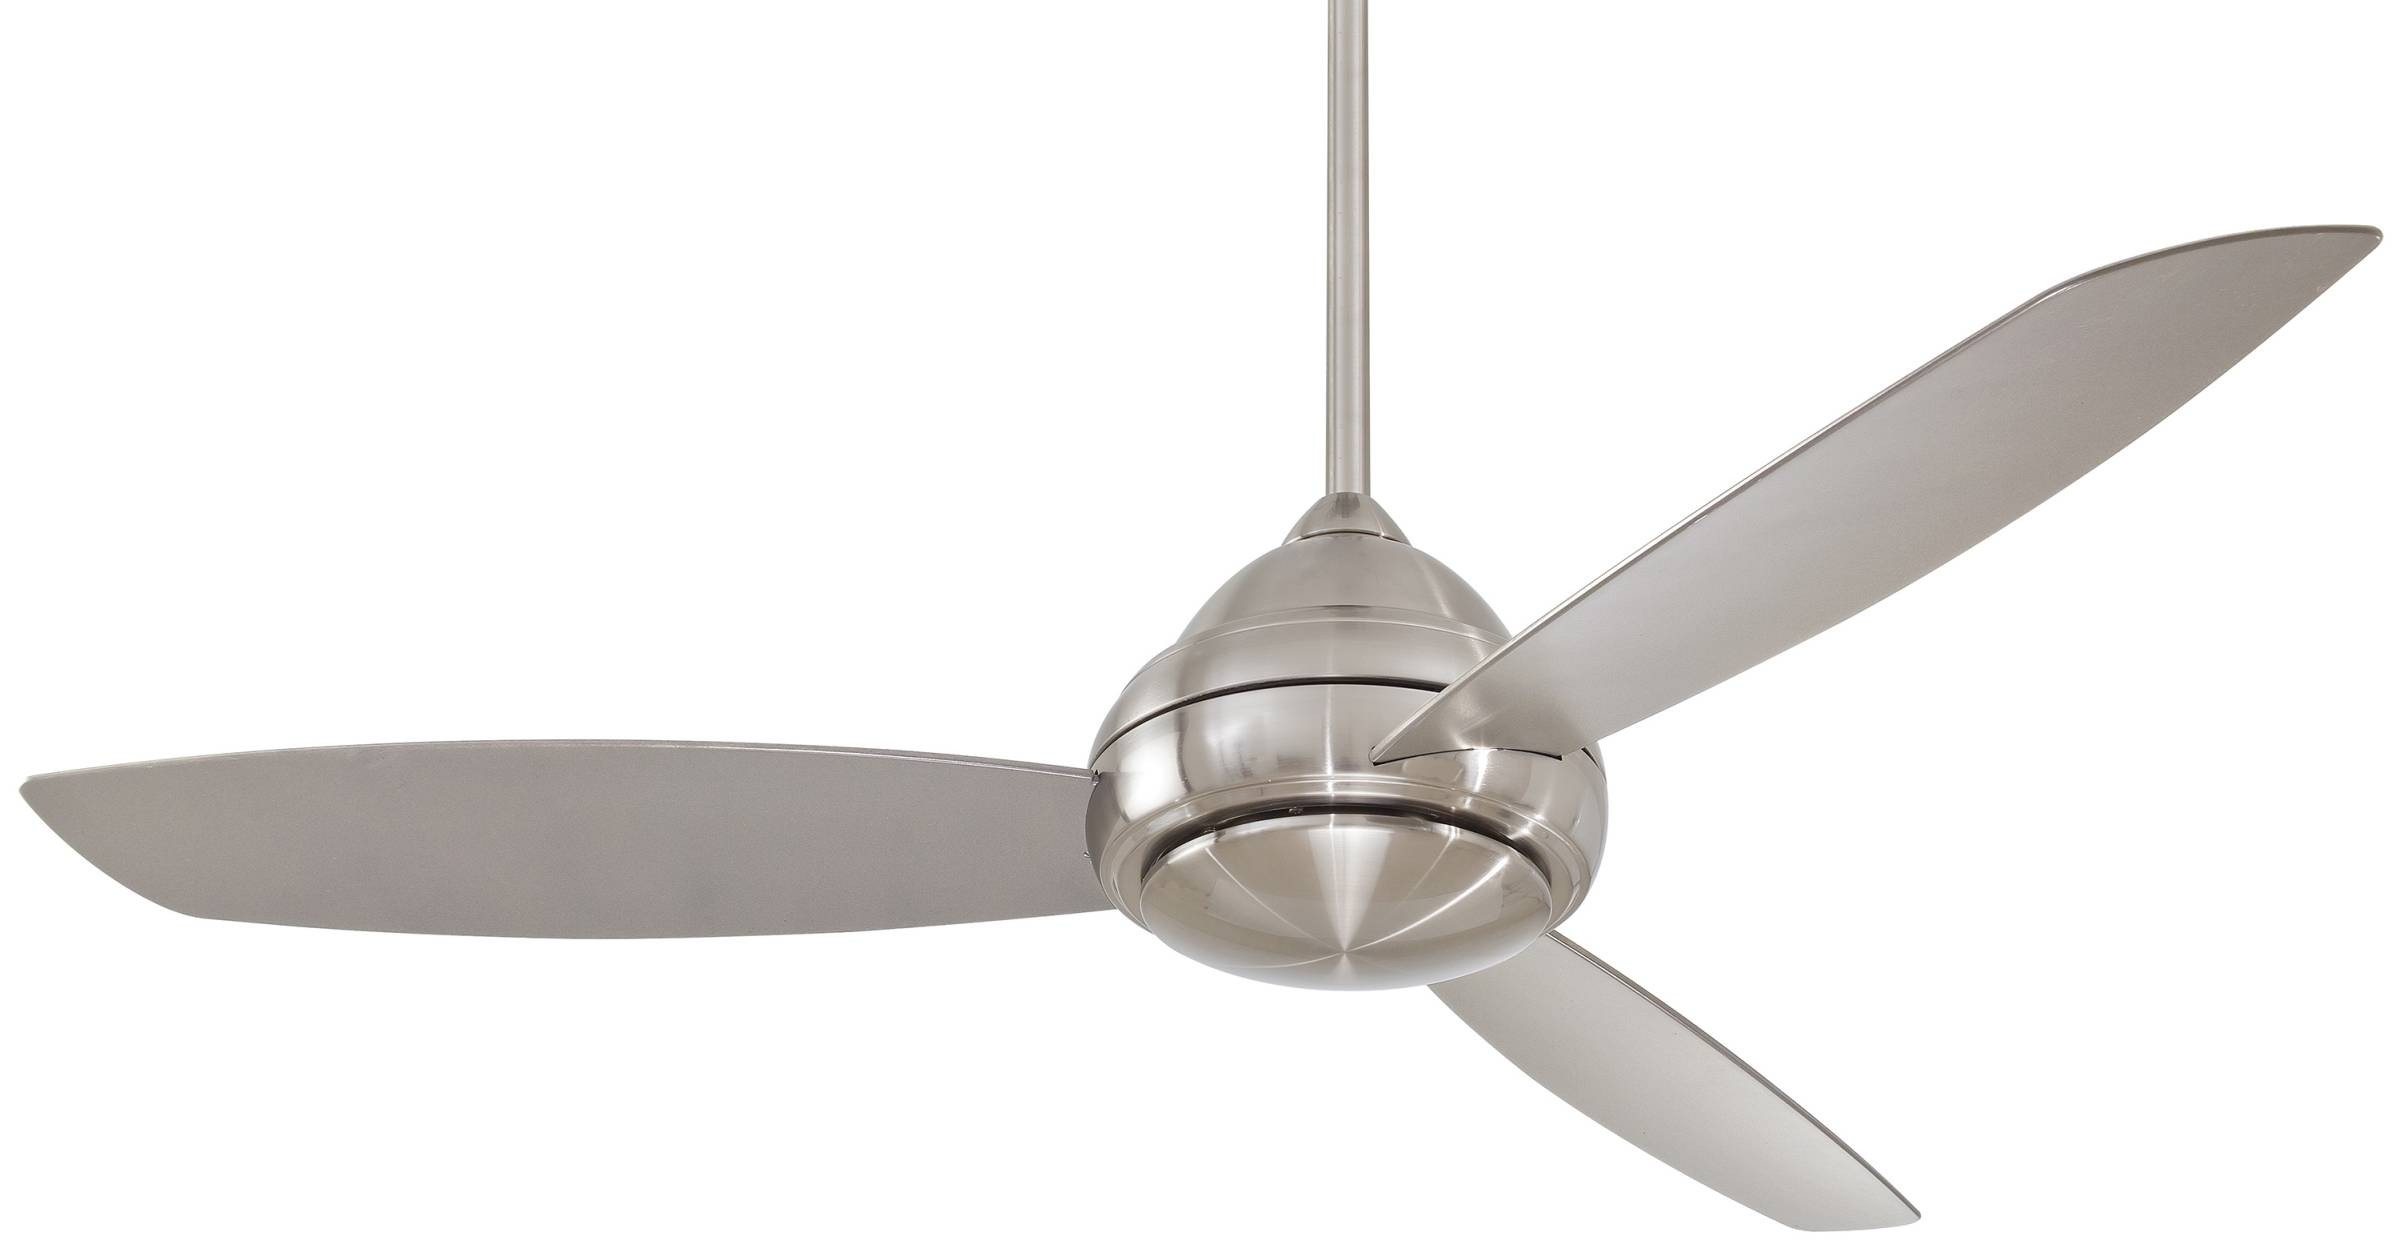 Outdoor Ceiling Fans With Wet Rated Lights Throughout Well Liked Outdoor Ceiling Fans – Choose Wet Rated Or Damp Rated For Your Space! (View 18 of 20)